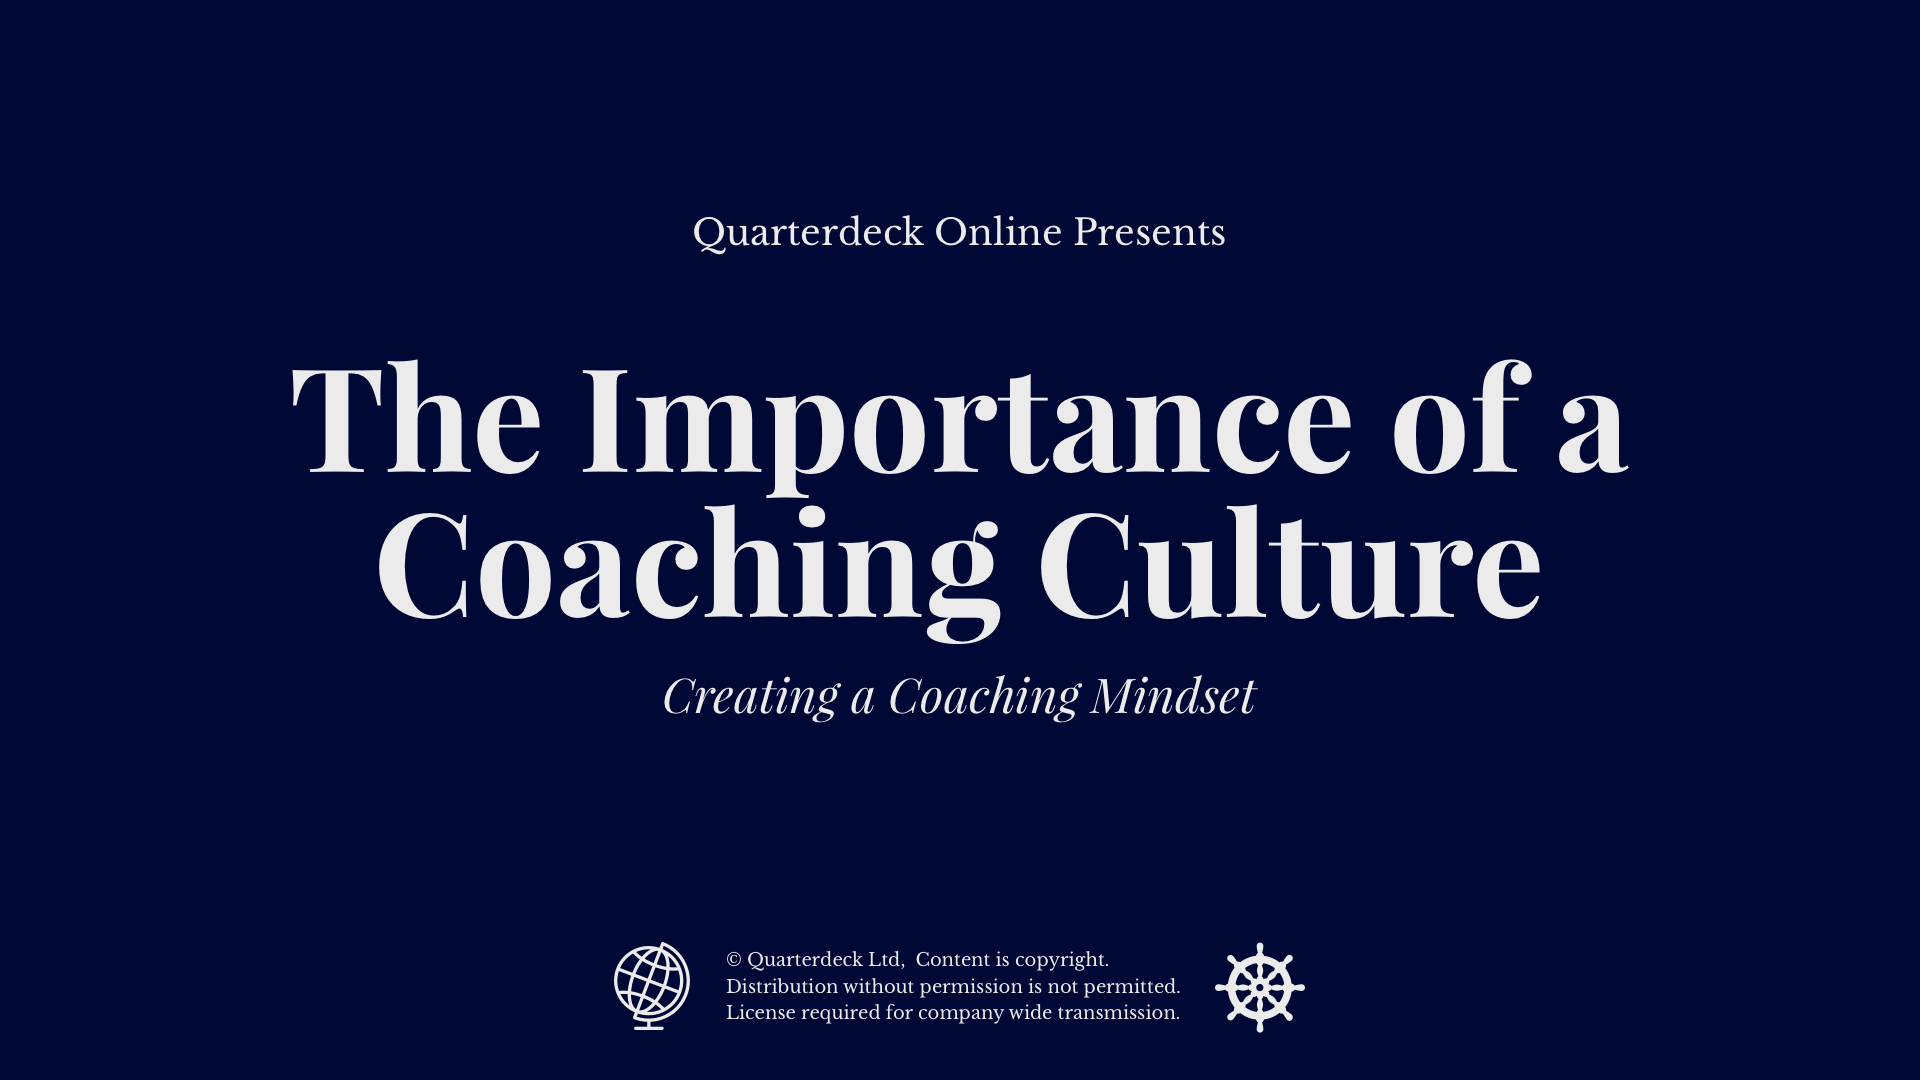 The Importance of a Coaching Culture